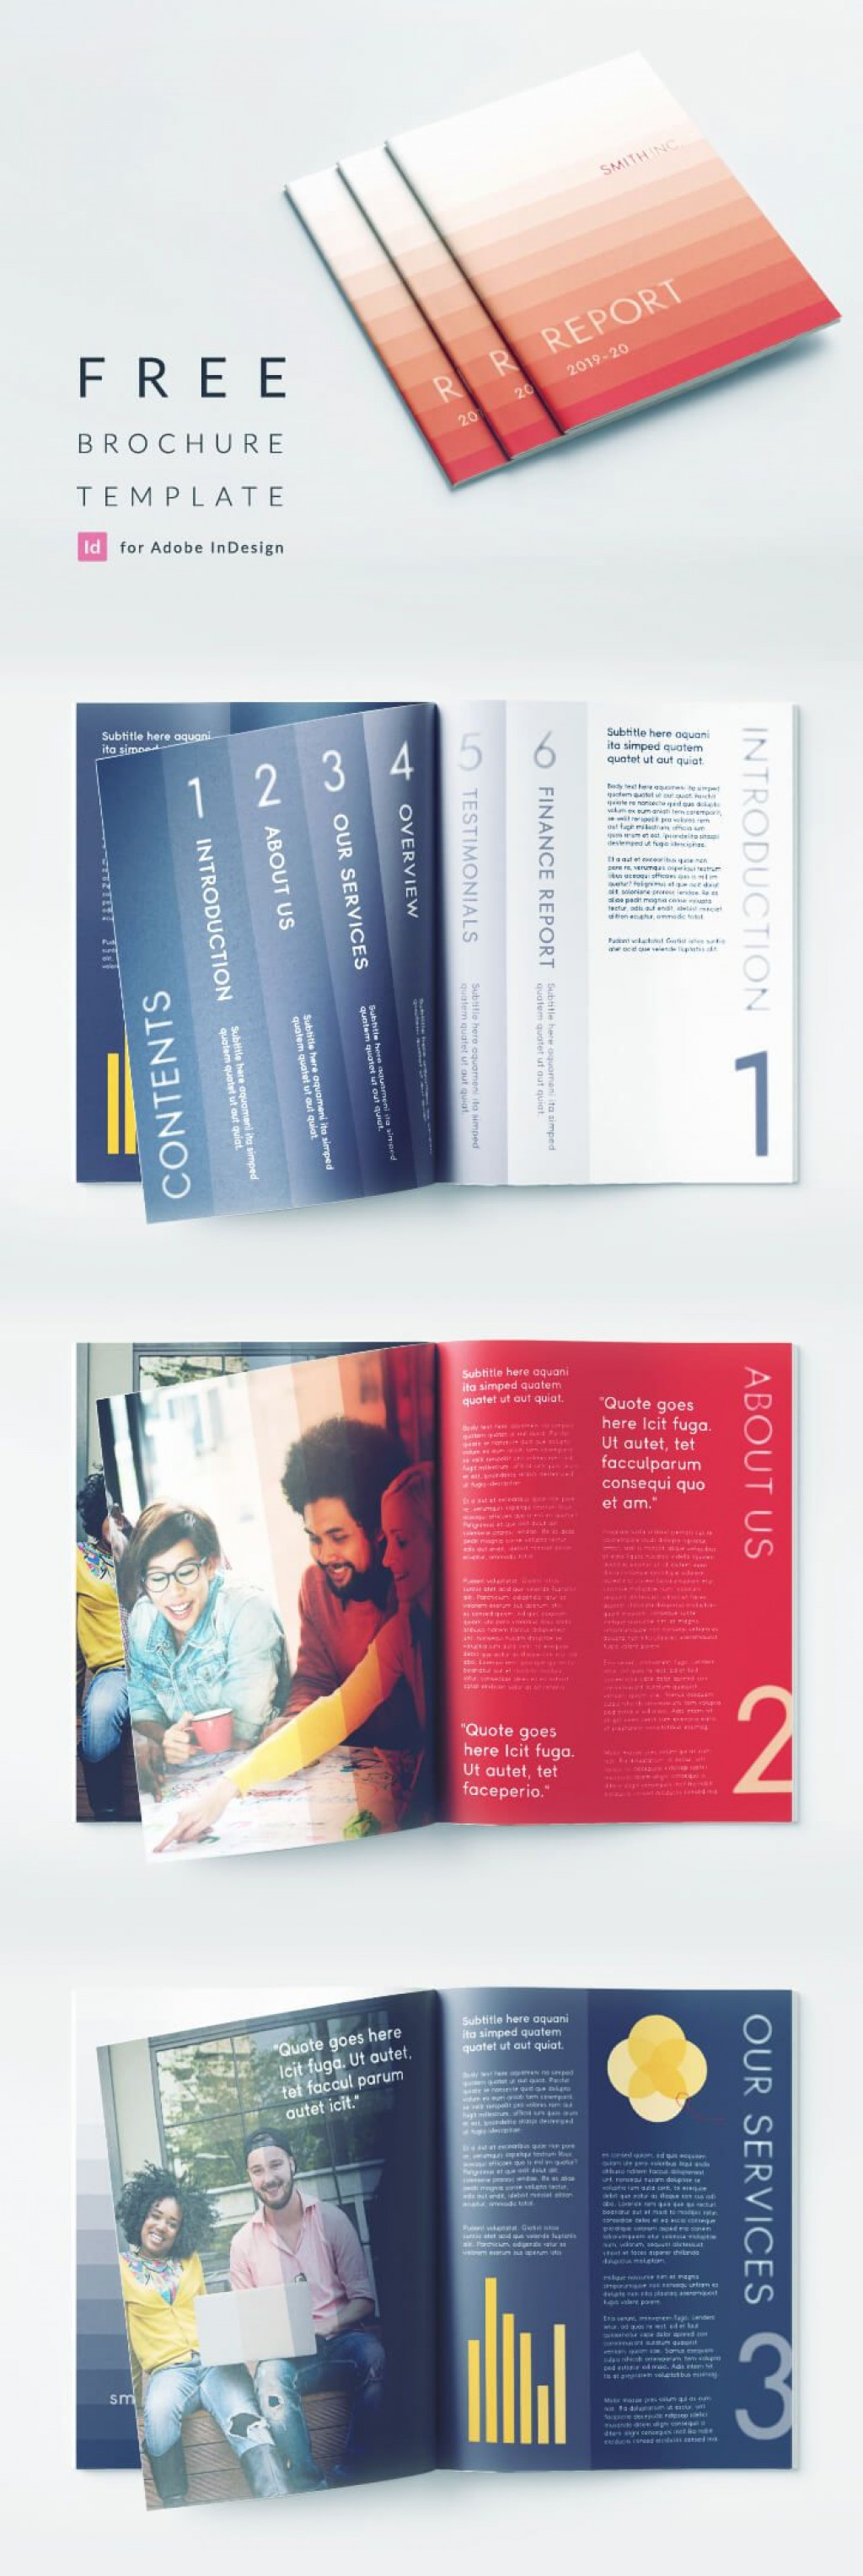 005 Outstanding Adobe Indesign Brochure Template Free Download High Definition Large